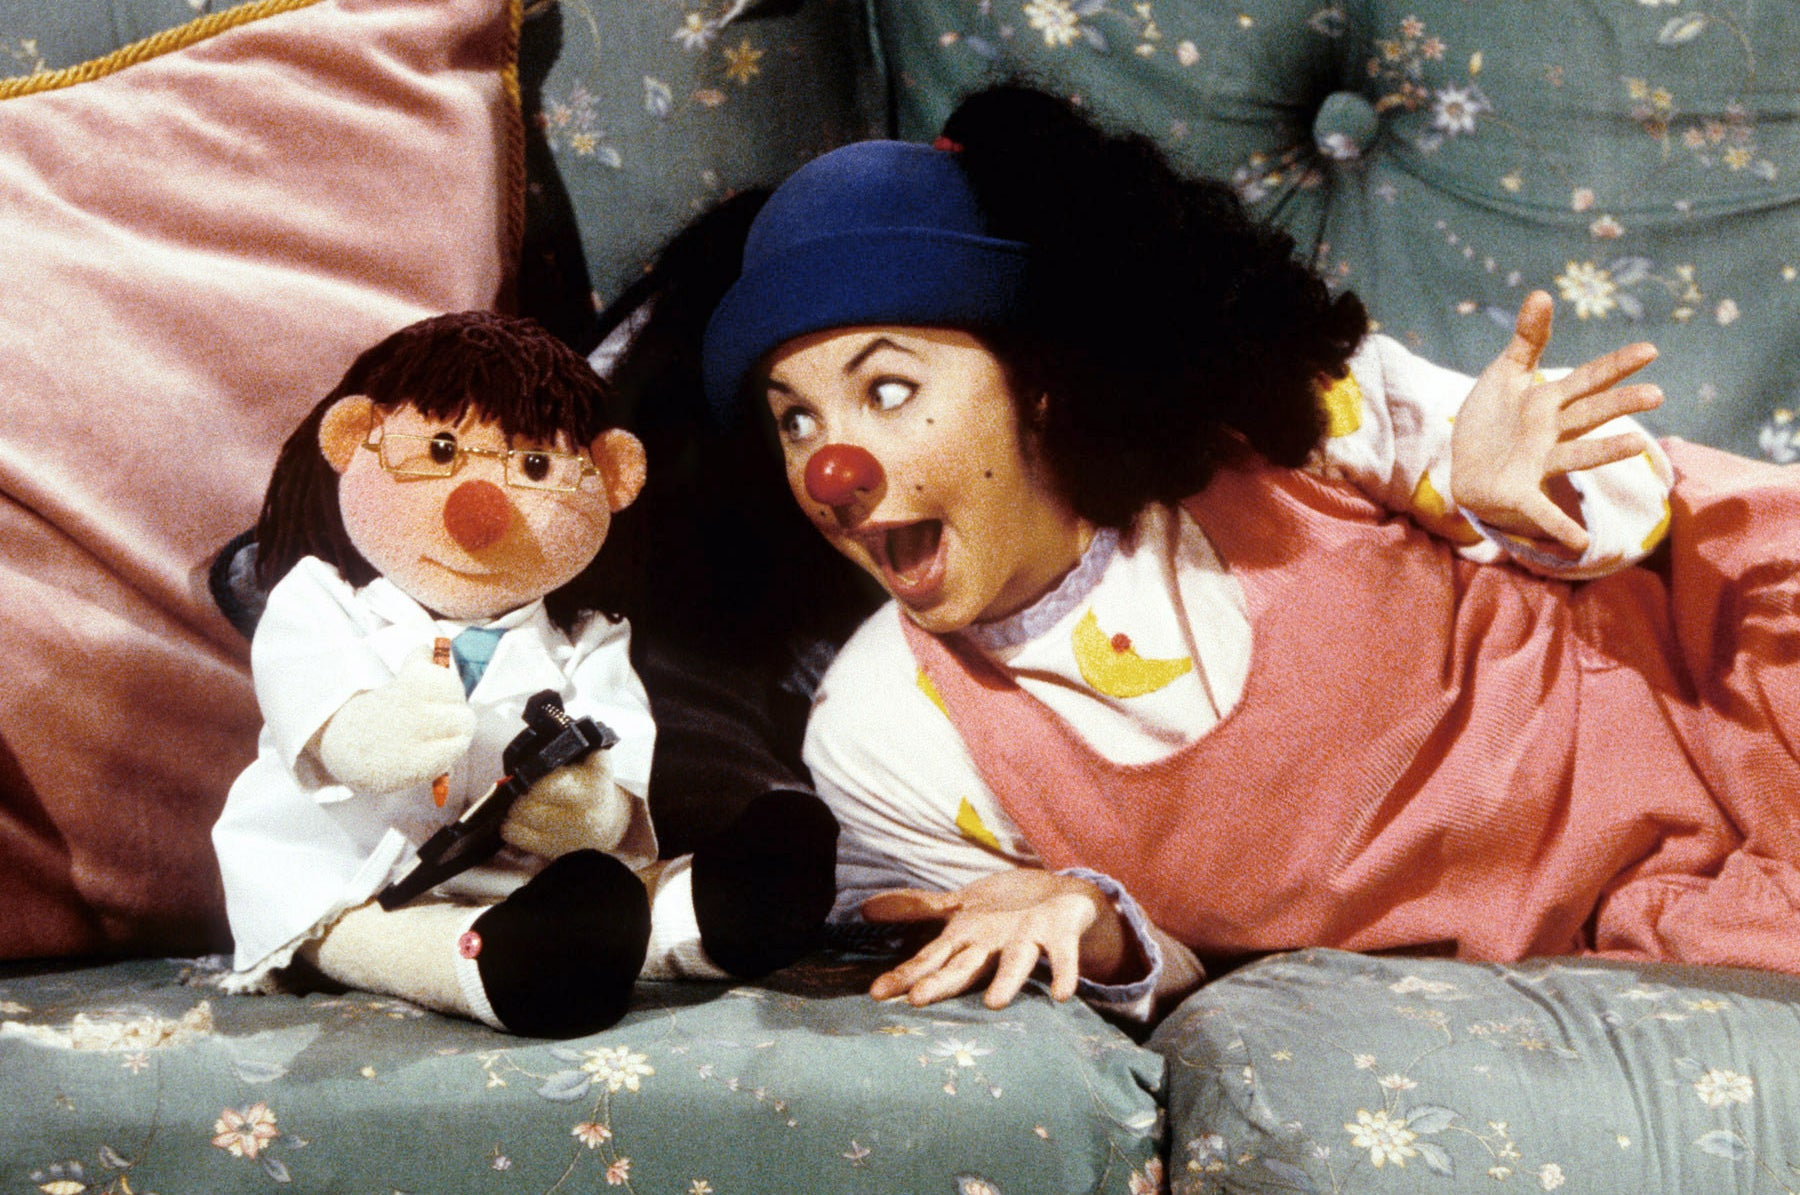 Molly Dolly and Loonette the Clown on couch